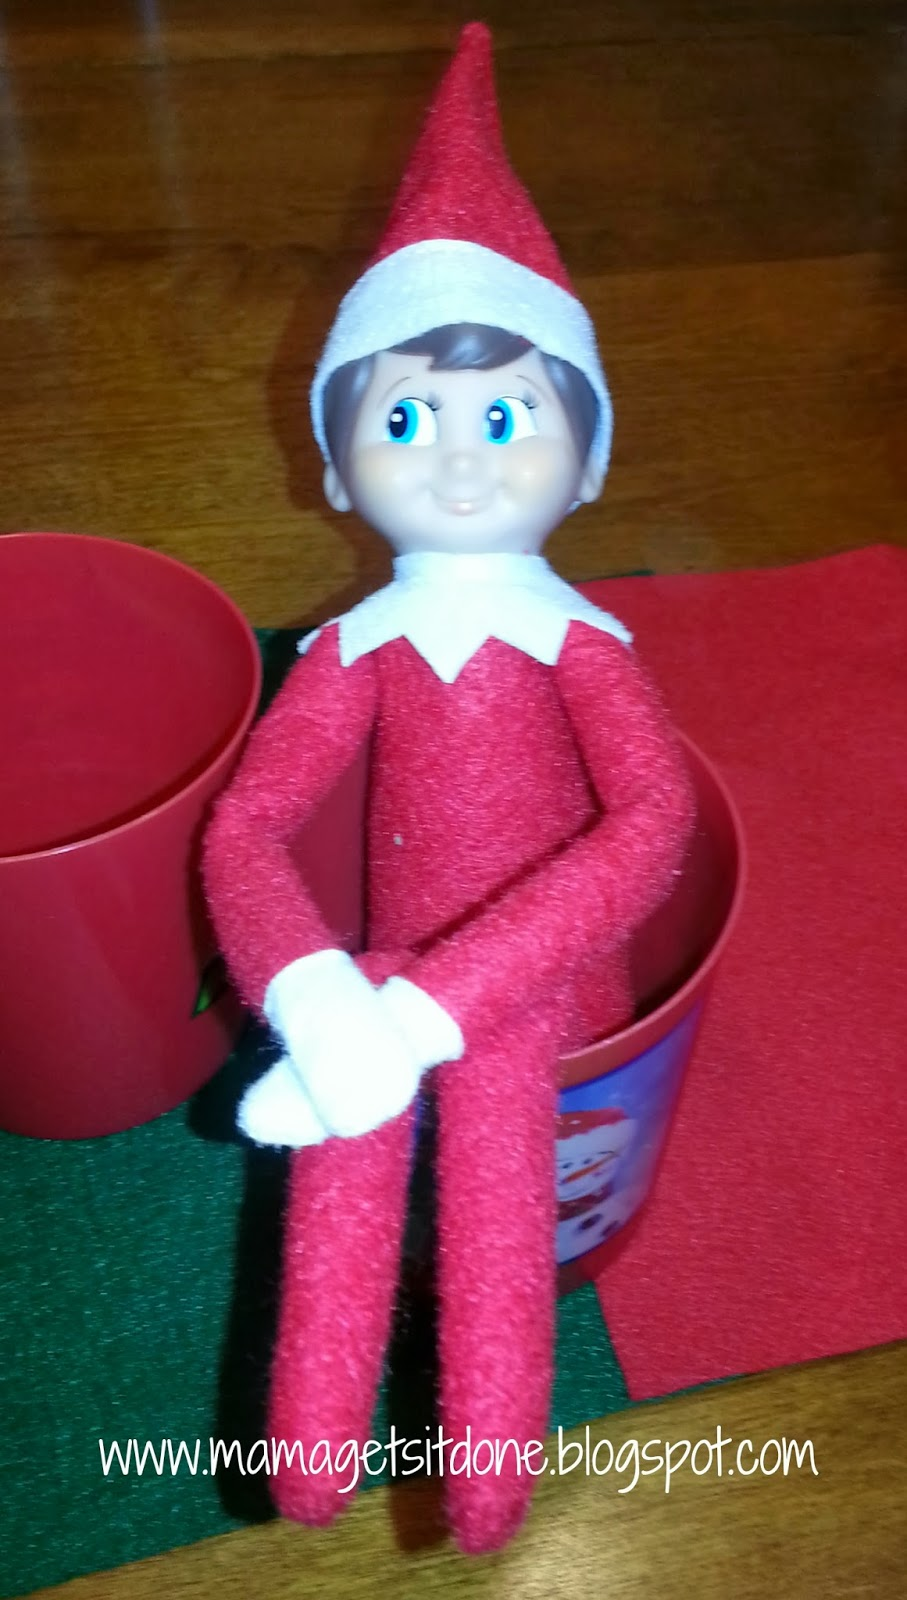 Mama Gets It Done Elf On The Shelf Arrives